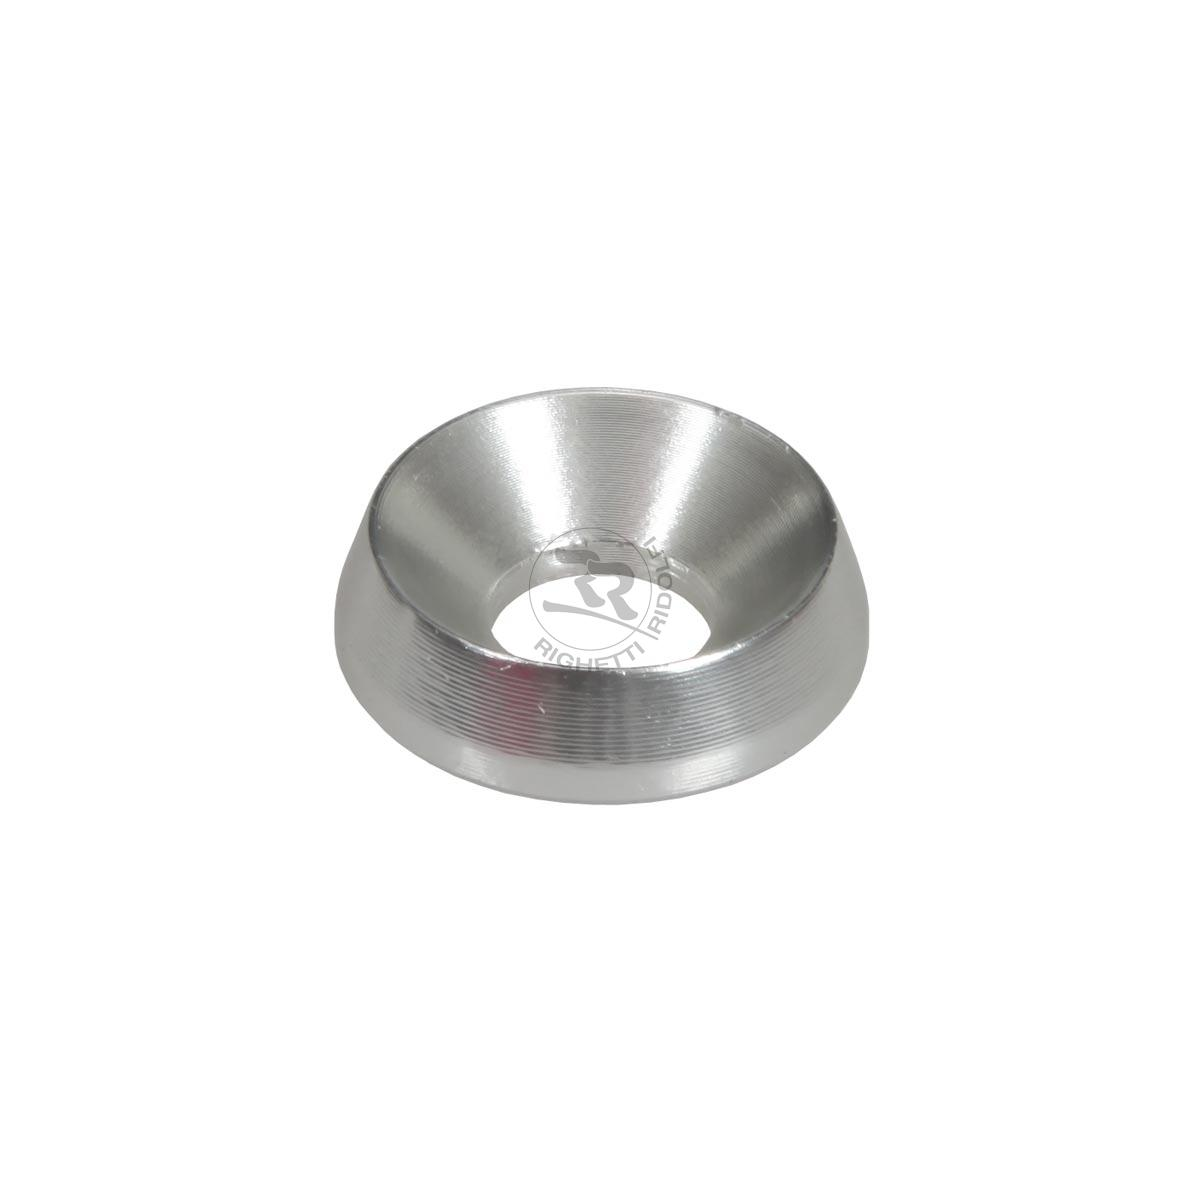 ALUMINIUM COUNTERSUNK WASHER 19 x 8mm, ALUMINIUM ANODIZED